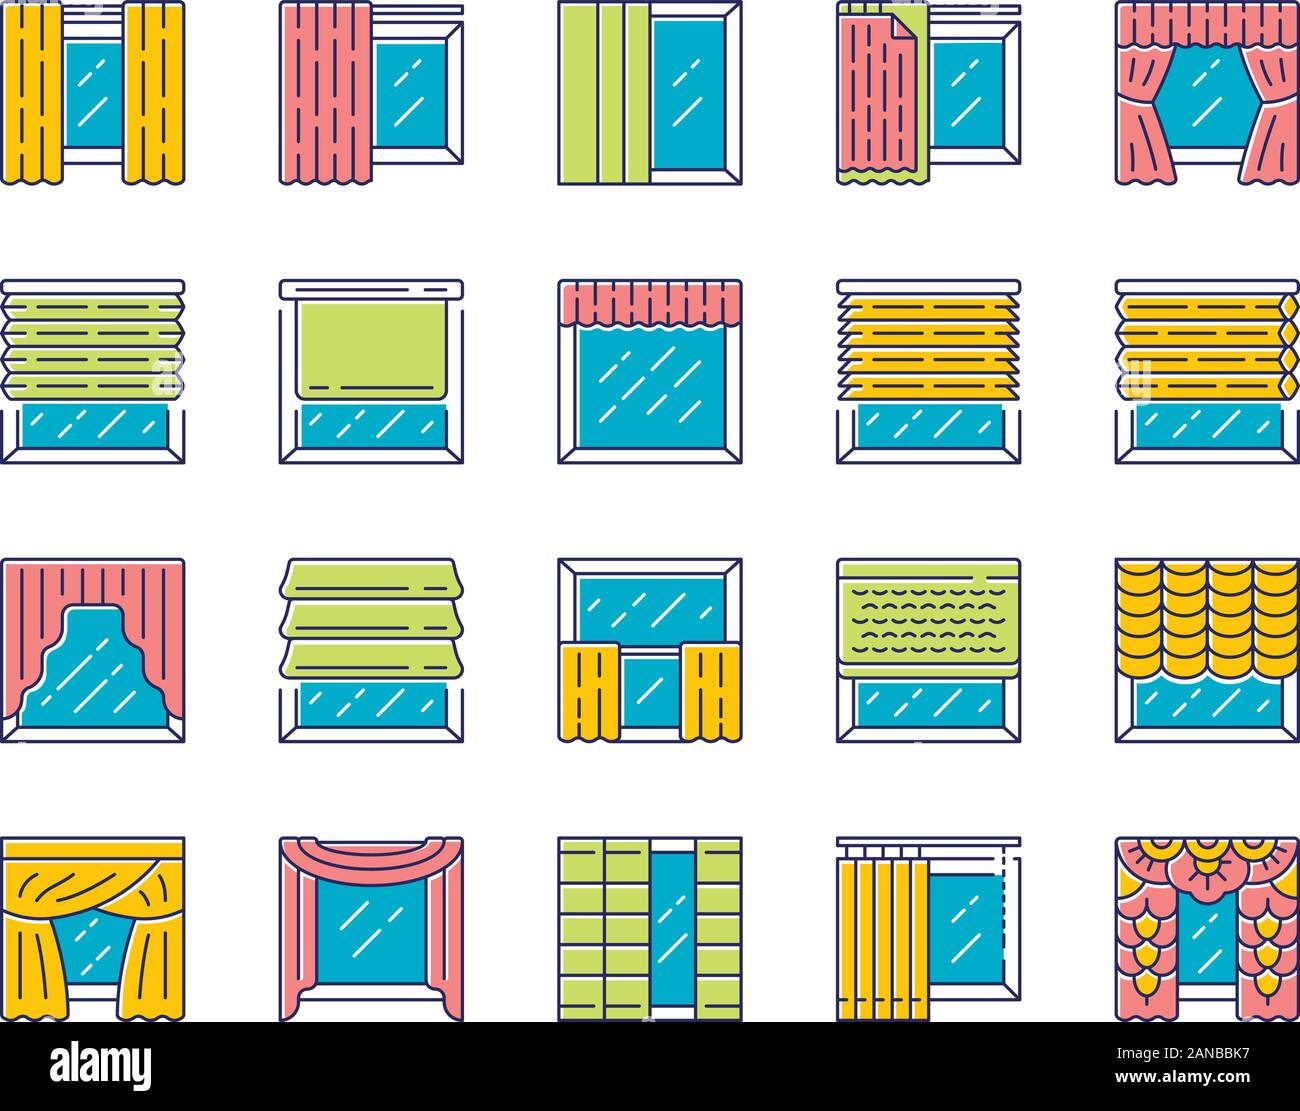 Window Treatments And Curtains Color Icons Set Roman Shades Blinds Valance Panel Shutters Room Darkening Interior Design Home Decor Shop Isol Stock Vector Image Art Alamy